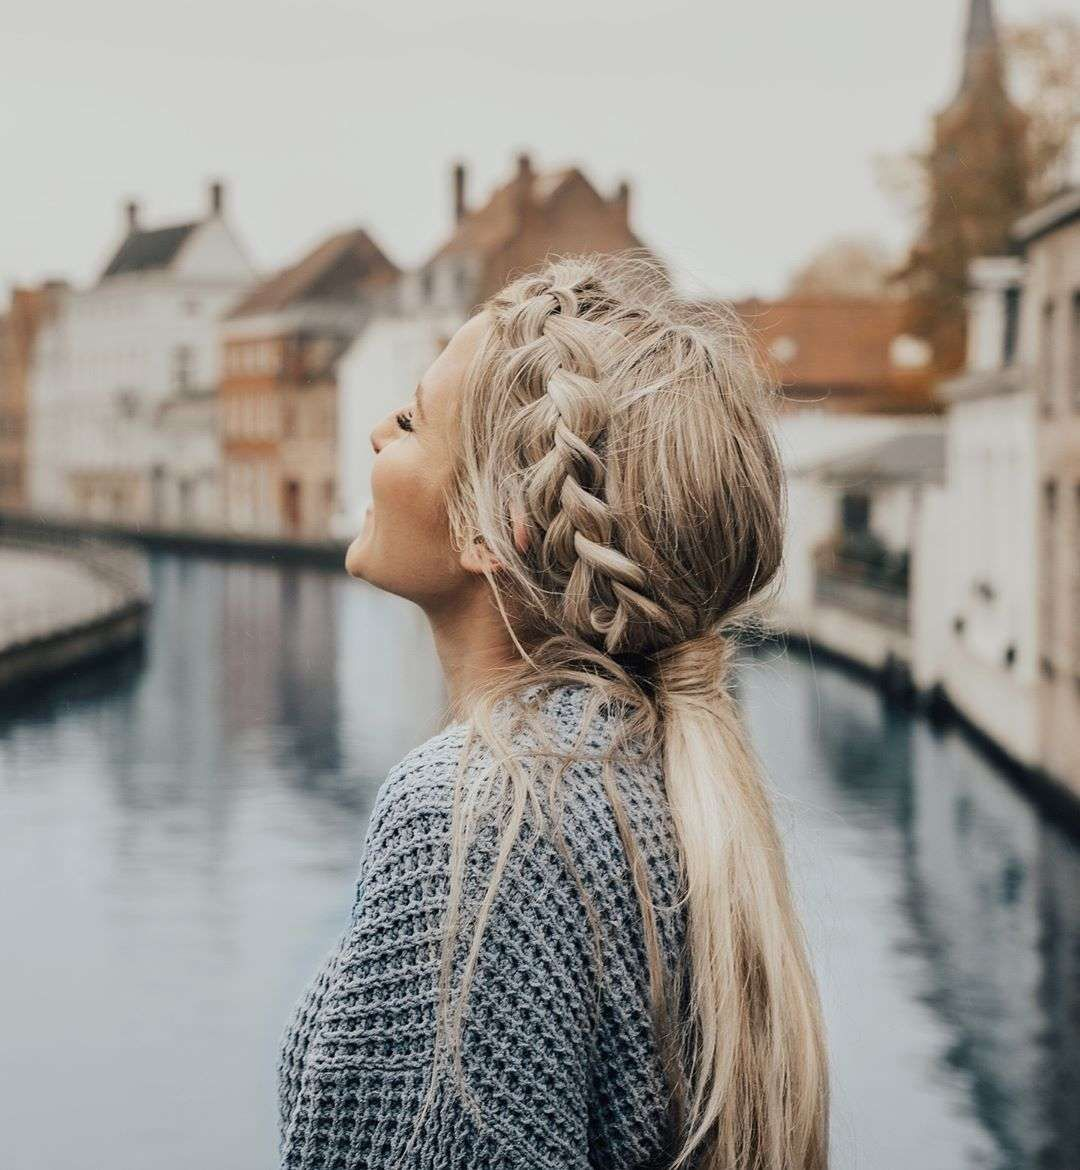 Best Long Hairstyles for Girls 2019 » Hairstyles For Girls - Trending Hairstyles Blog